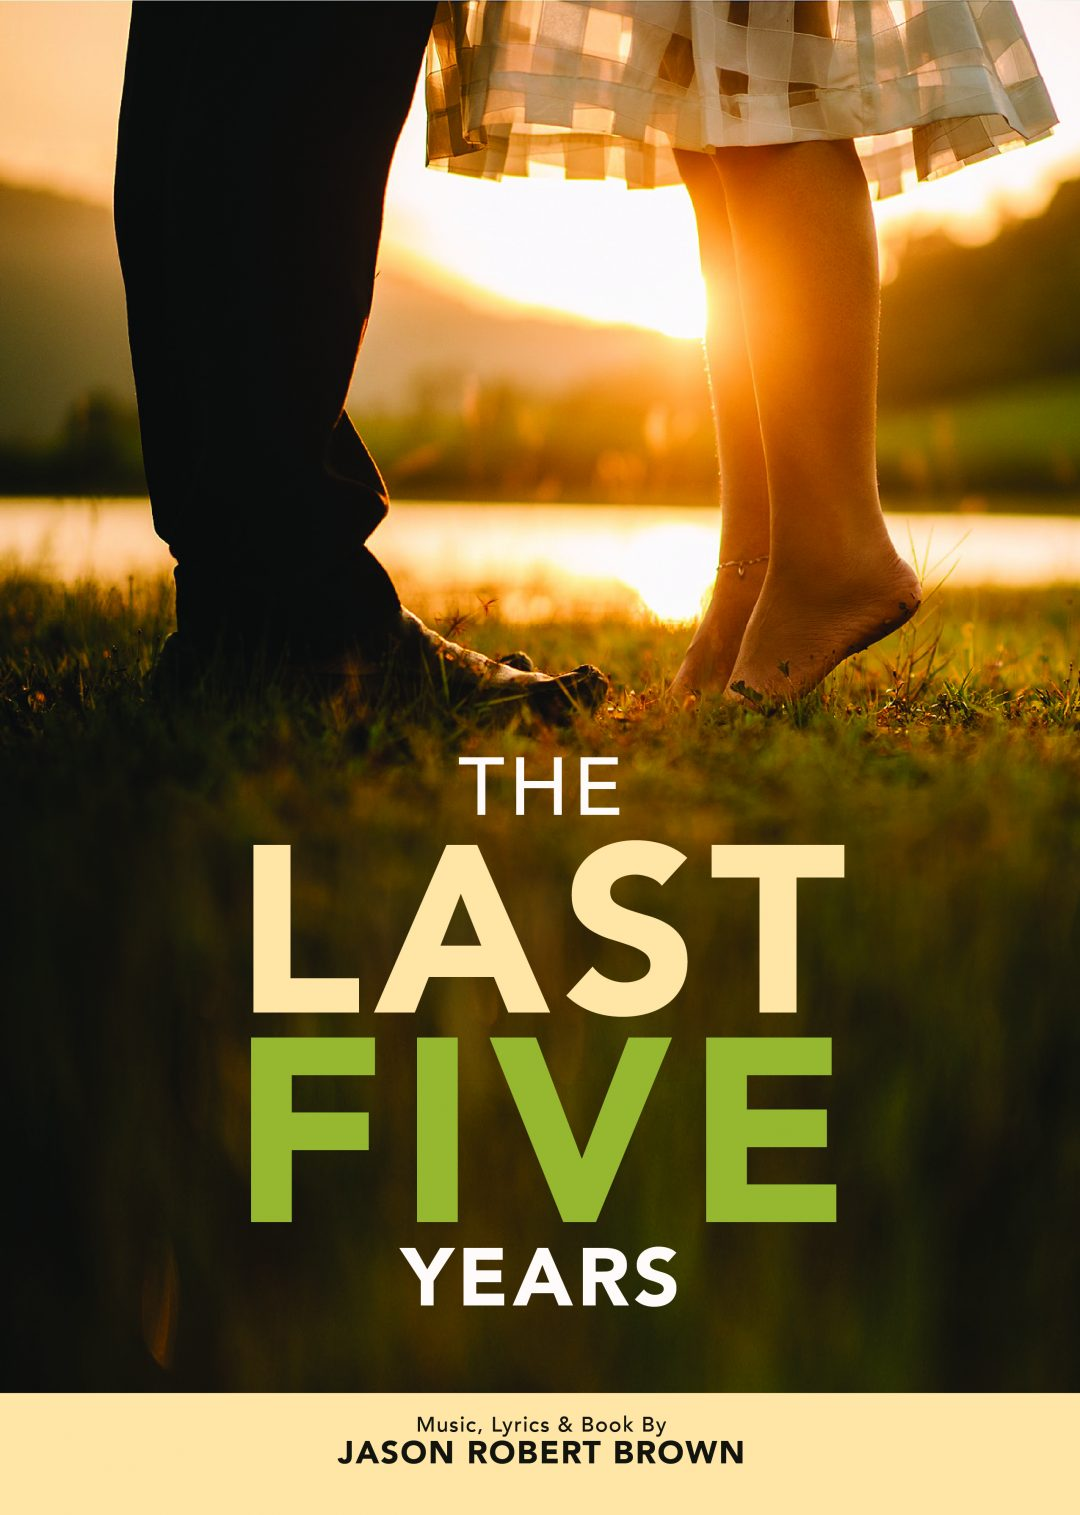 The Last Five Years Show Artwork